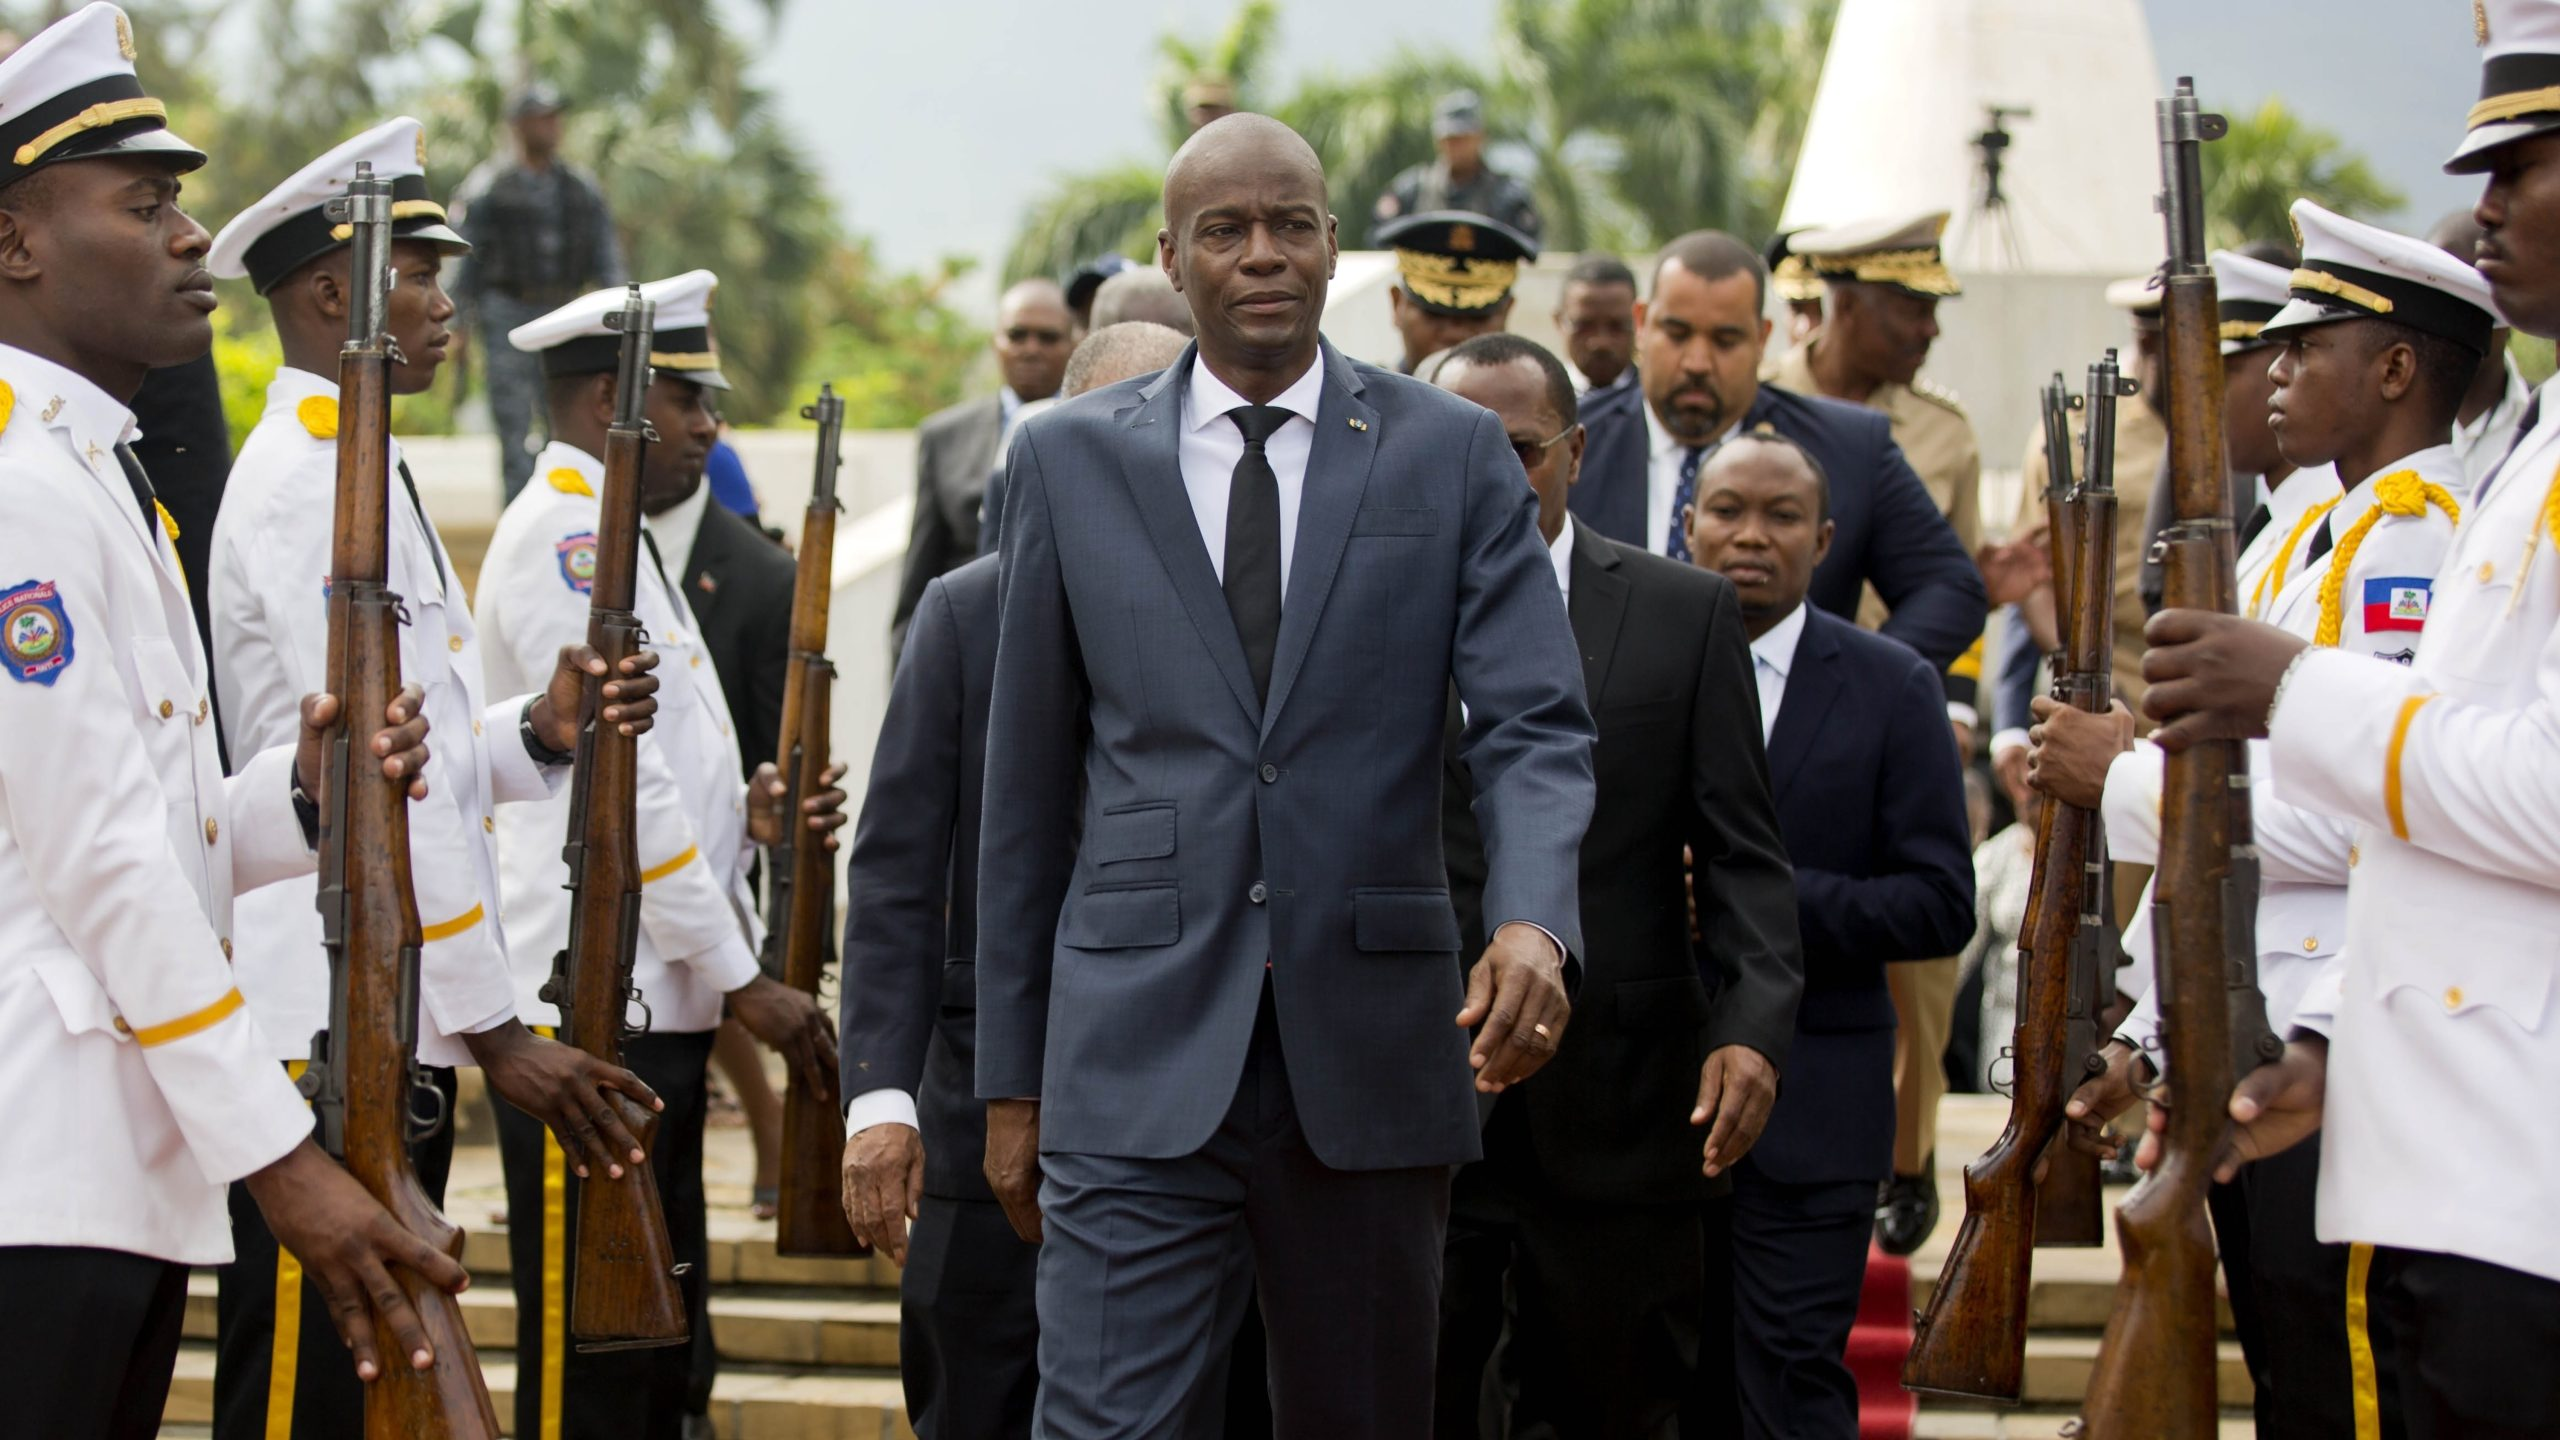 Haiti's President Jovenel Moise, center, leaves the museum during a ceremony marking the 215th anniversary of revolutionary hero Toussaint Louverture's death, at the National Pantheon museum in Port-au-Prince, Haiti, on April 7, 2018. (Dieu Nalio Chery / Associated Press)